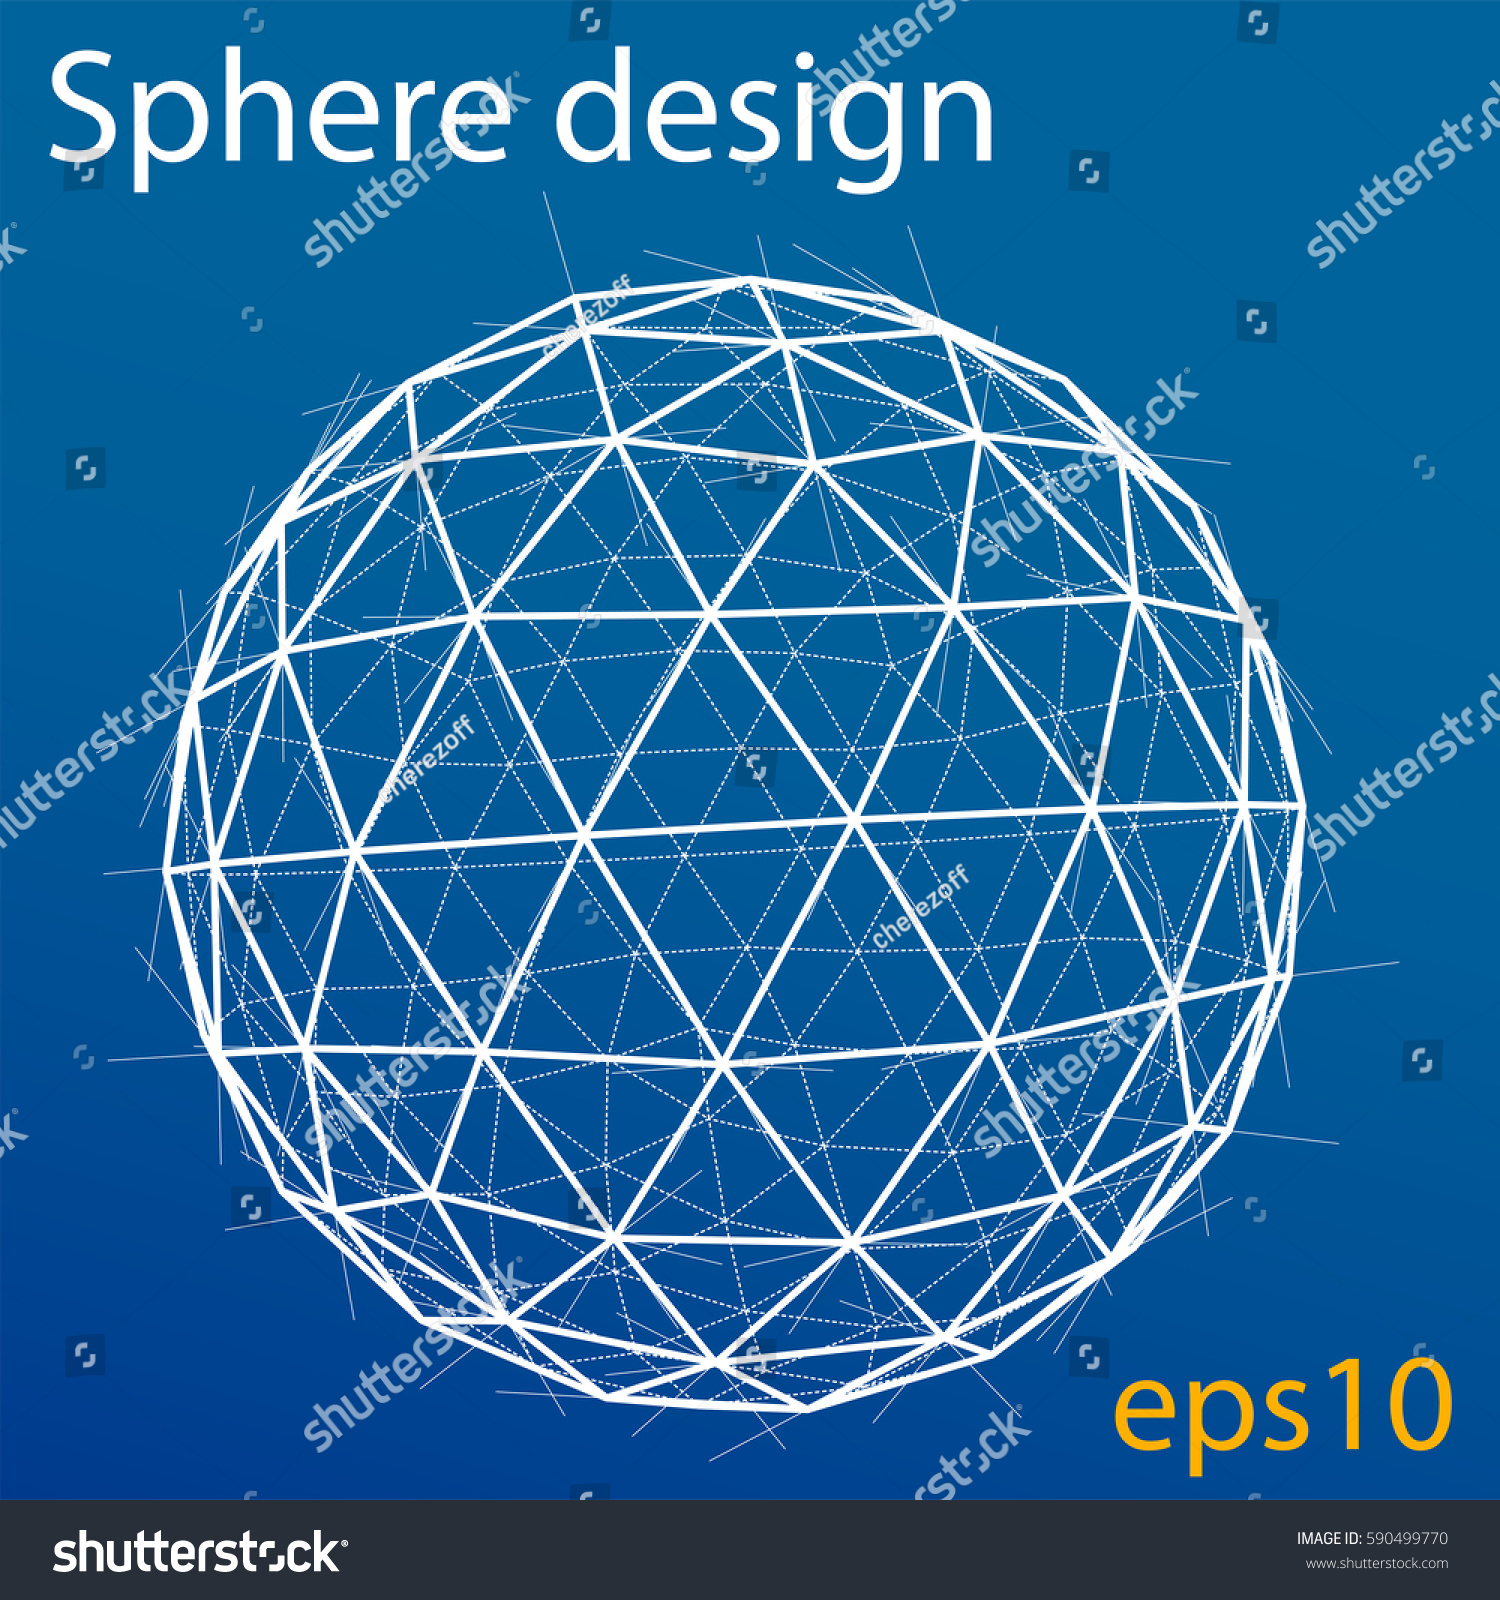 Blueprint sphere wireframe style 3d rendering vectores en stock blueprint of sphere wire frame style 3d rendering vector illustration eps10 format malvernweather Image collections